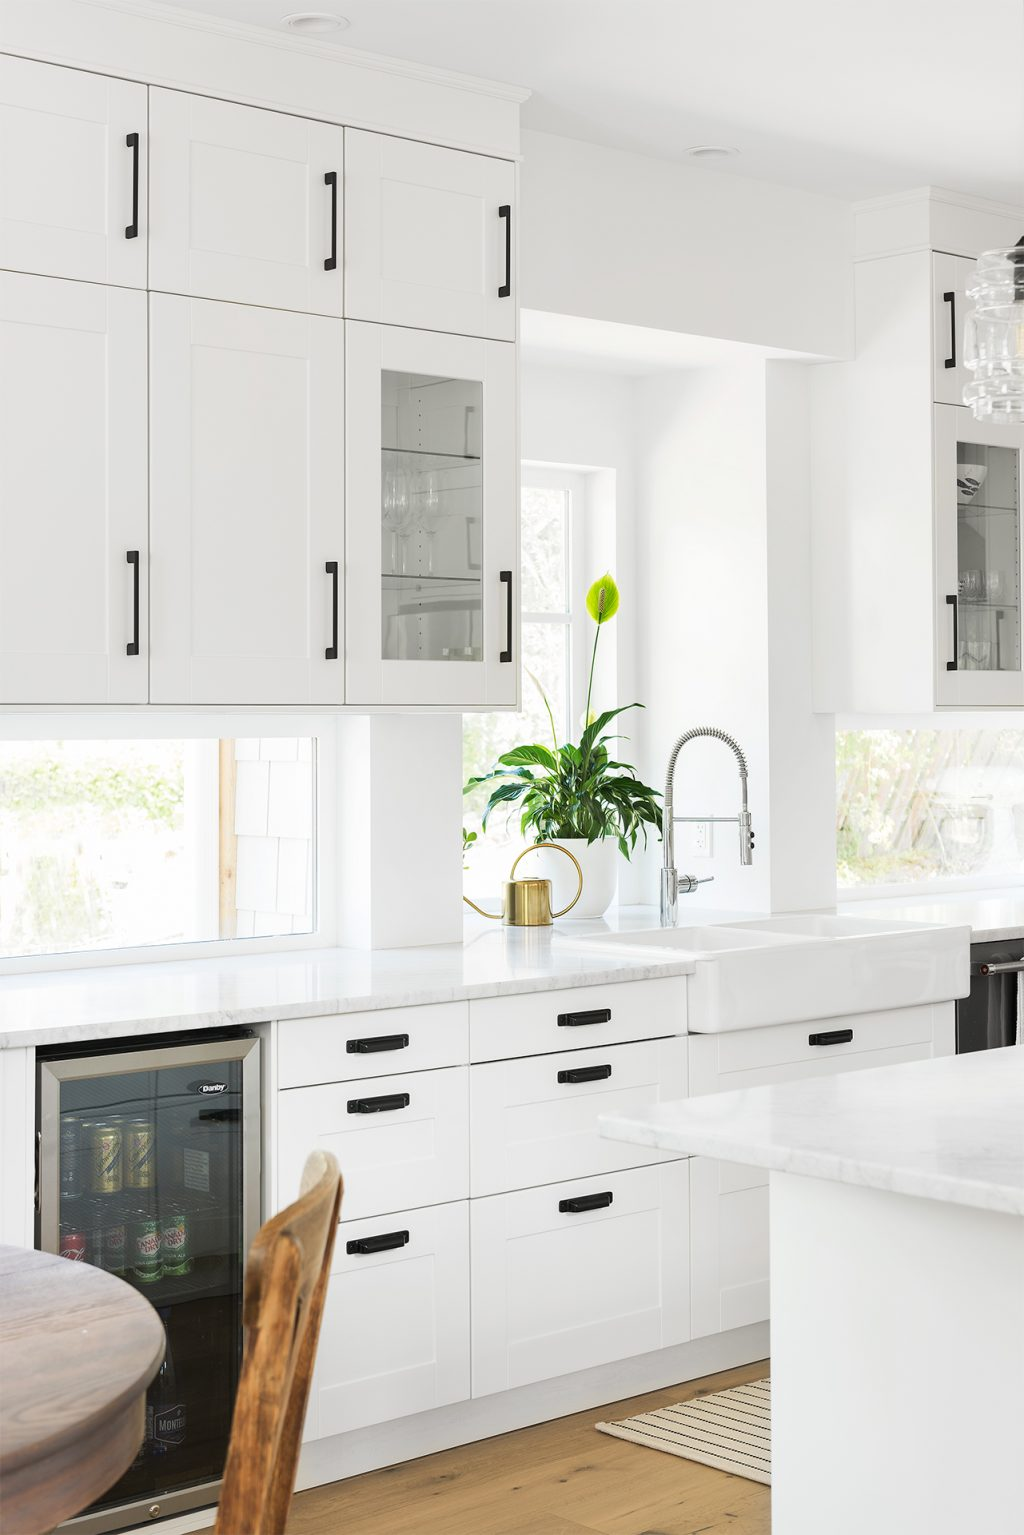 Ikea Kitchen Shines In Lakeside Dwelling Modern Home Magazine